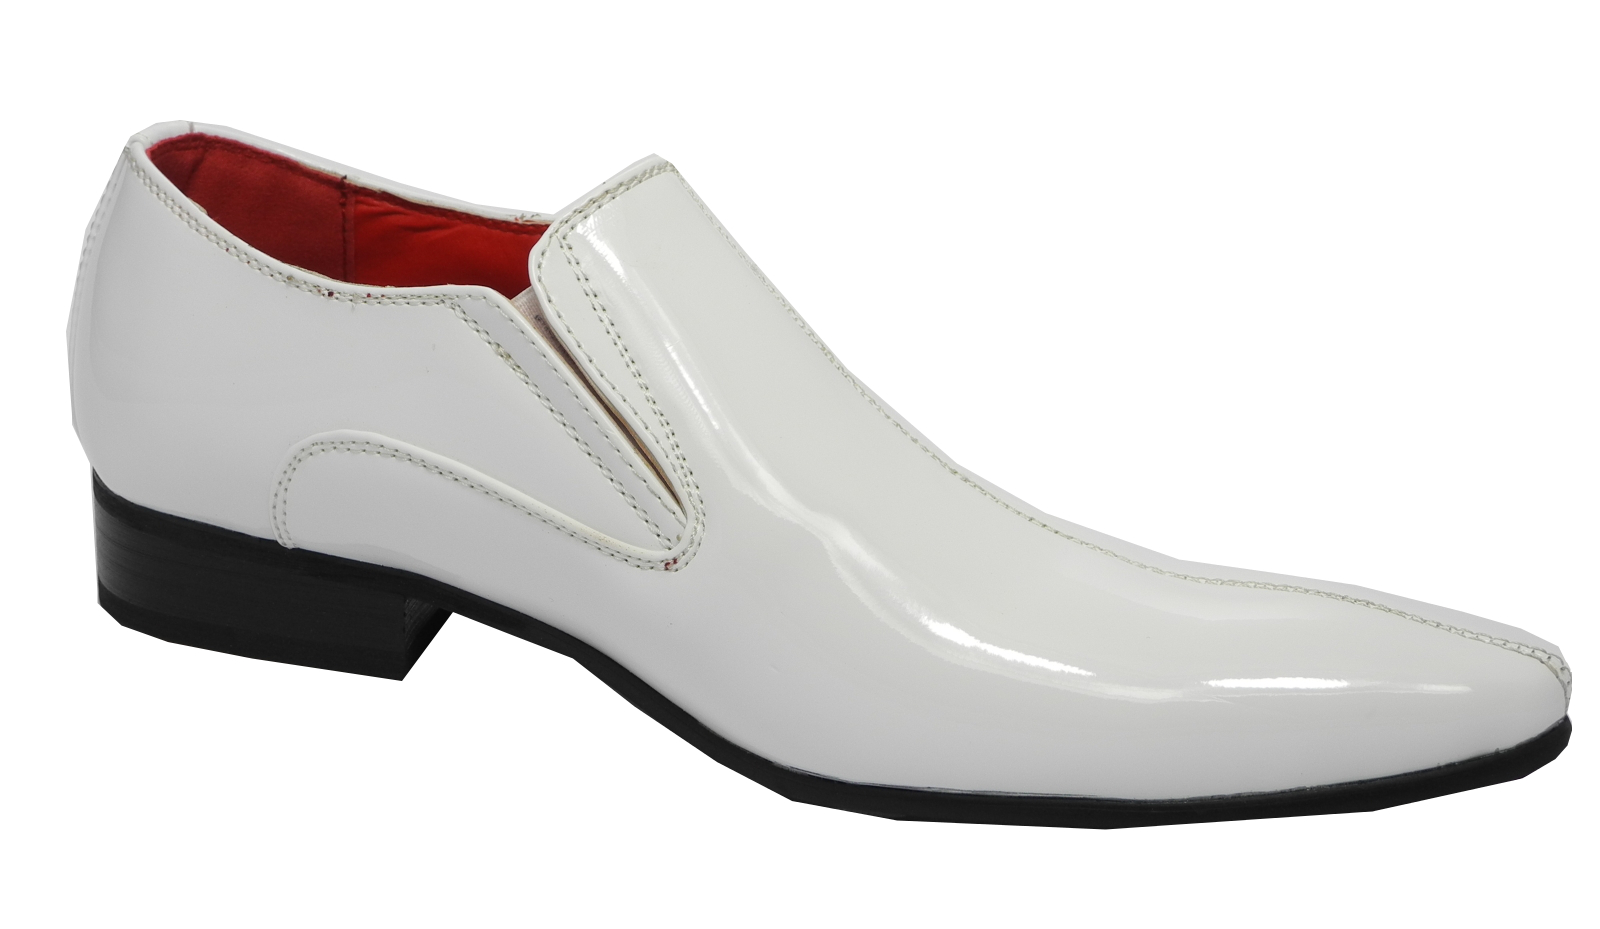 Mens Patent Leather Lined Pointed Toe Slip On Dress Shoes WHITE 7 ...